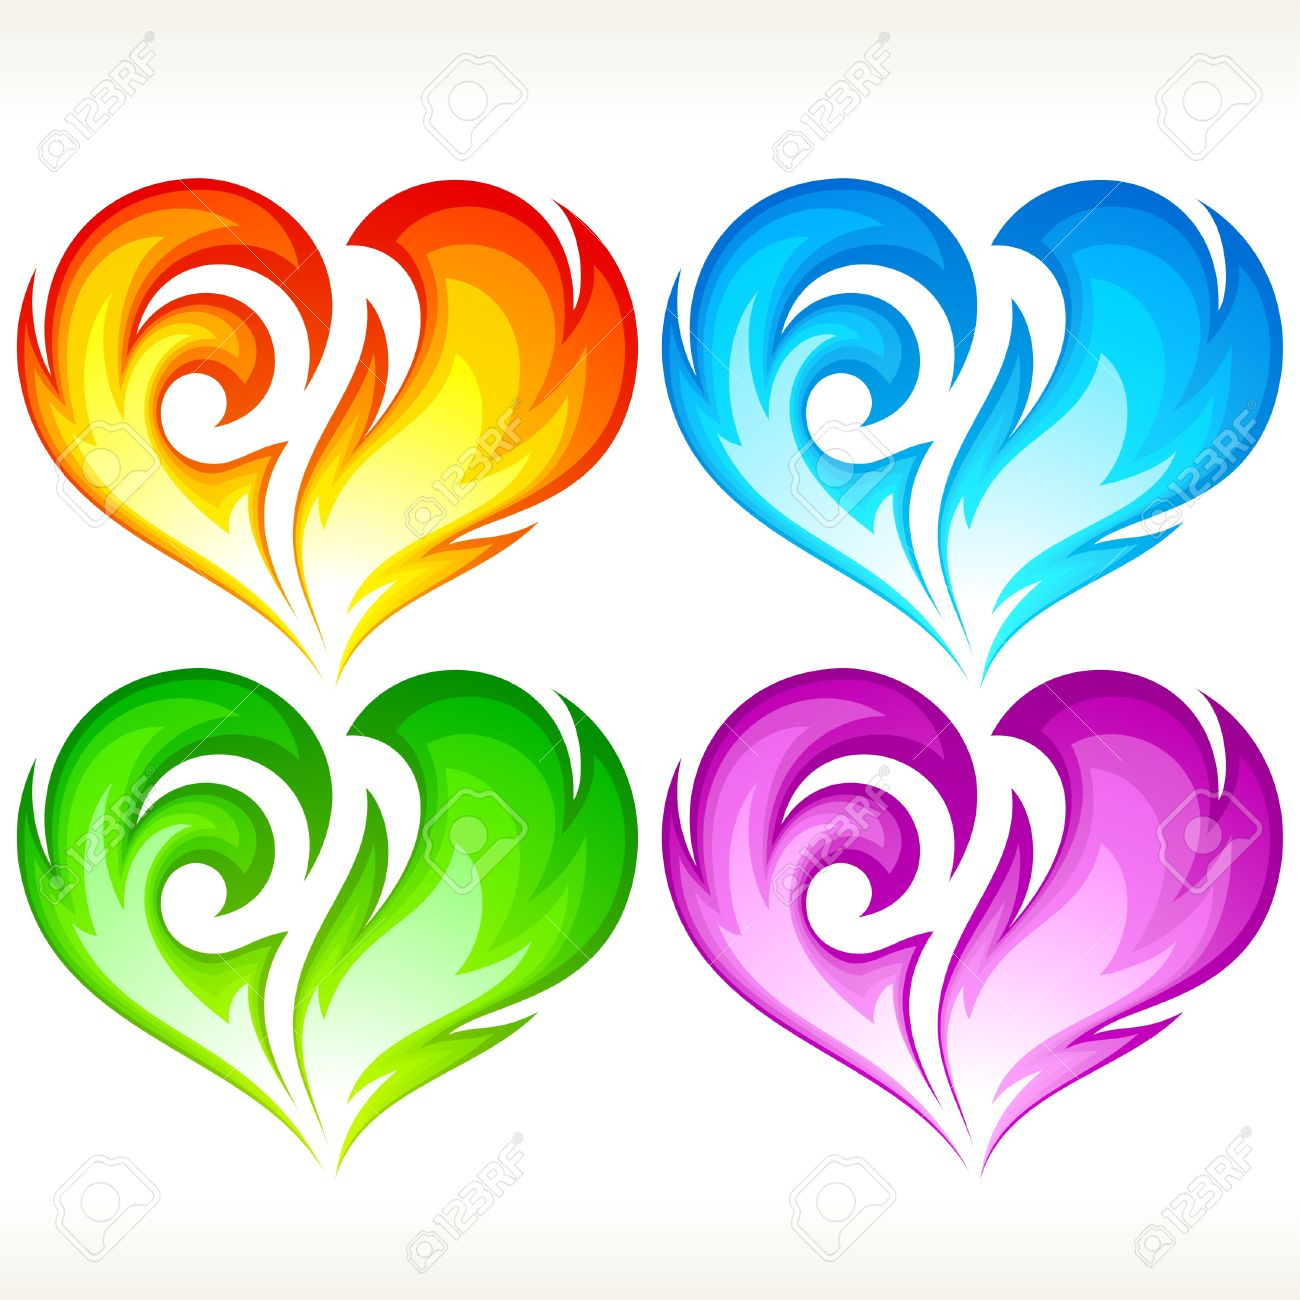 Set of burning heart. Red, blue, green and purple symbol of love. Stock Vector - 16462023